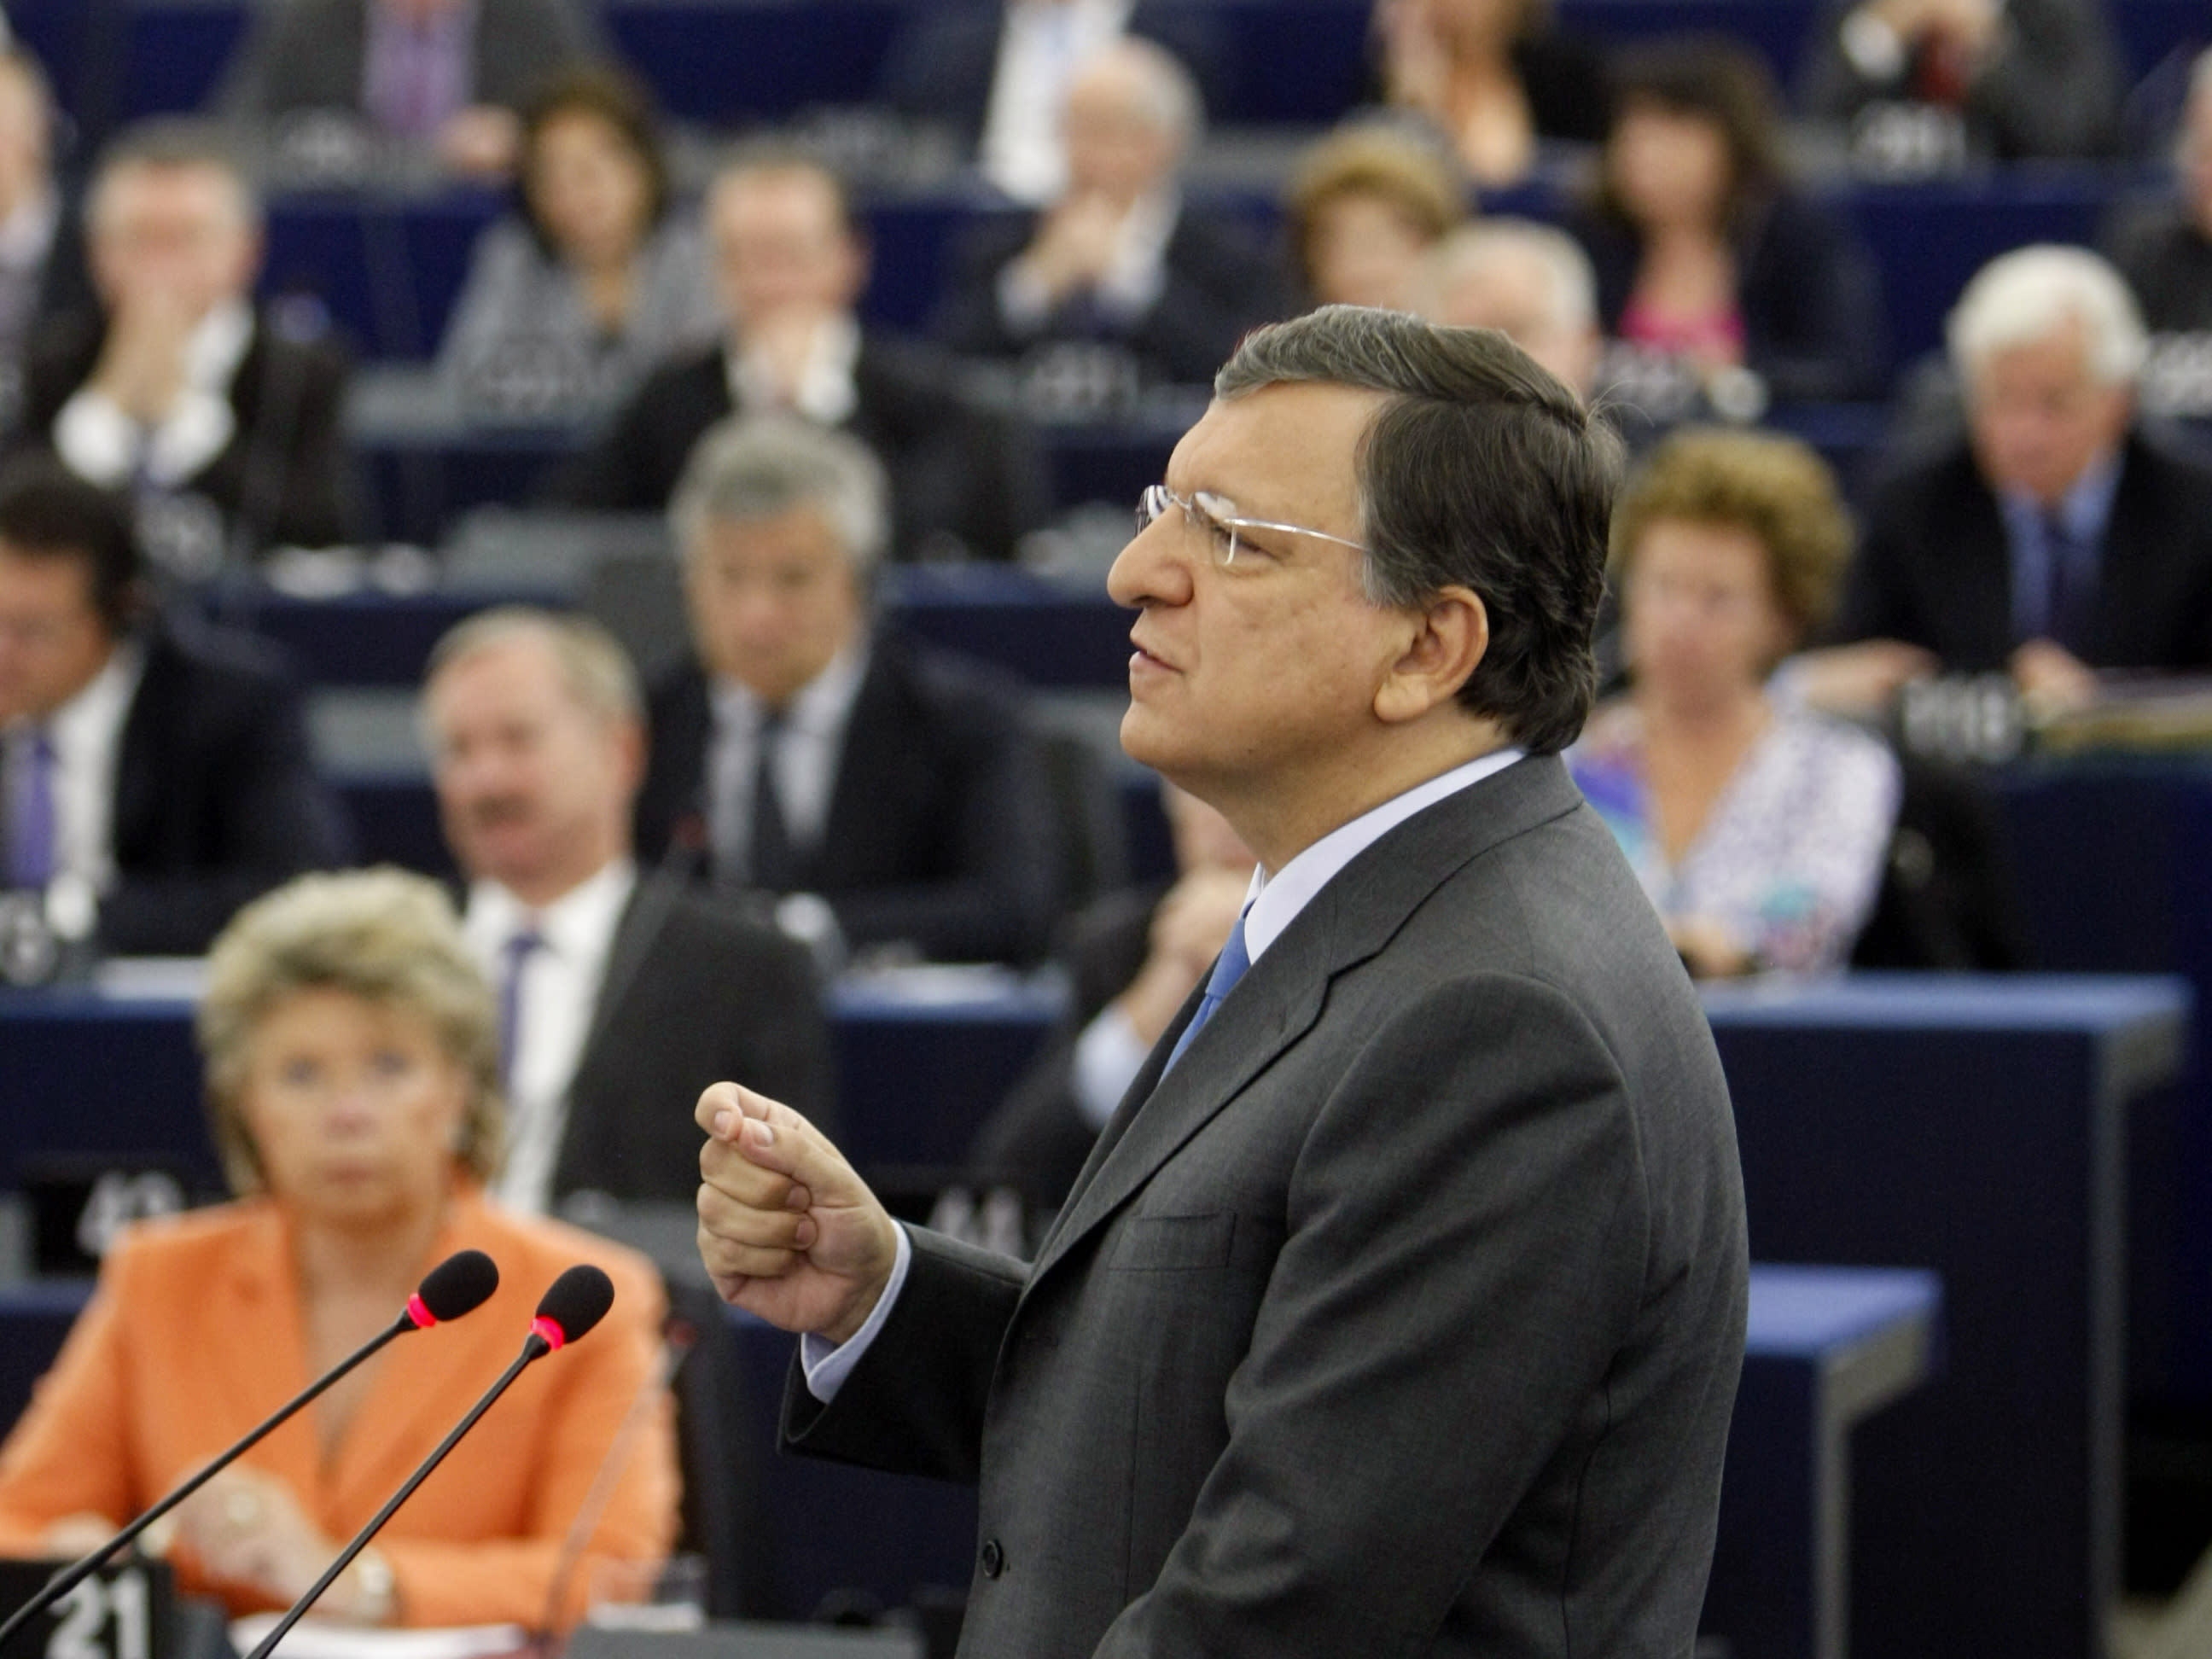 President of the European Commission Jose Manuel Barroso delivers his statement on the state of union, Wednesday, Sept 12, 2012 at the European Parliament in Strasbourg, eastern France. Barroso said that EU countries need to realize they are in the crisis together, and that they must work together to get out of it. The Commission is the EU's executive branch. (AP Photo/Christian Lutz)